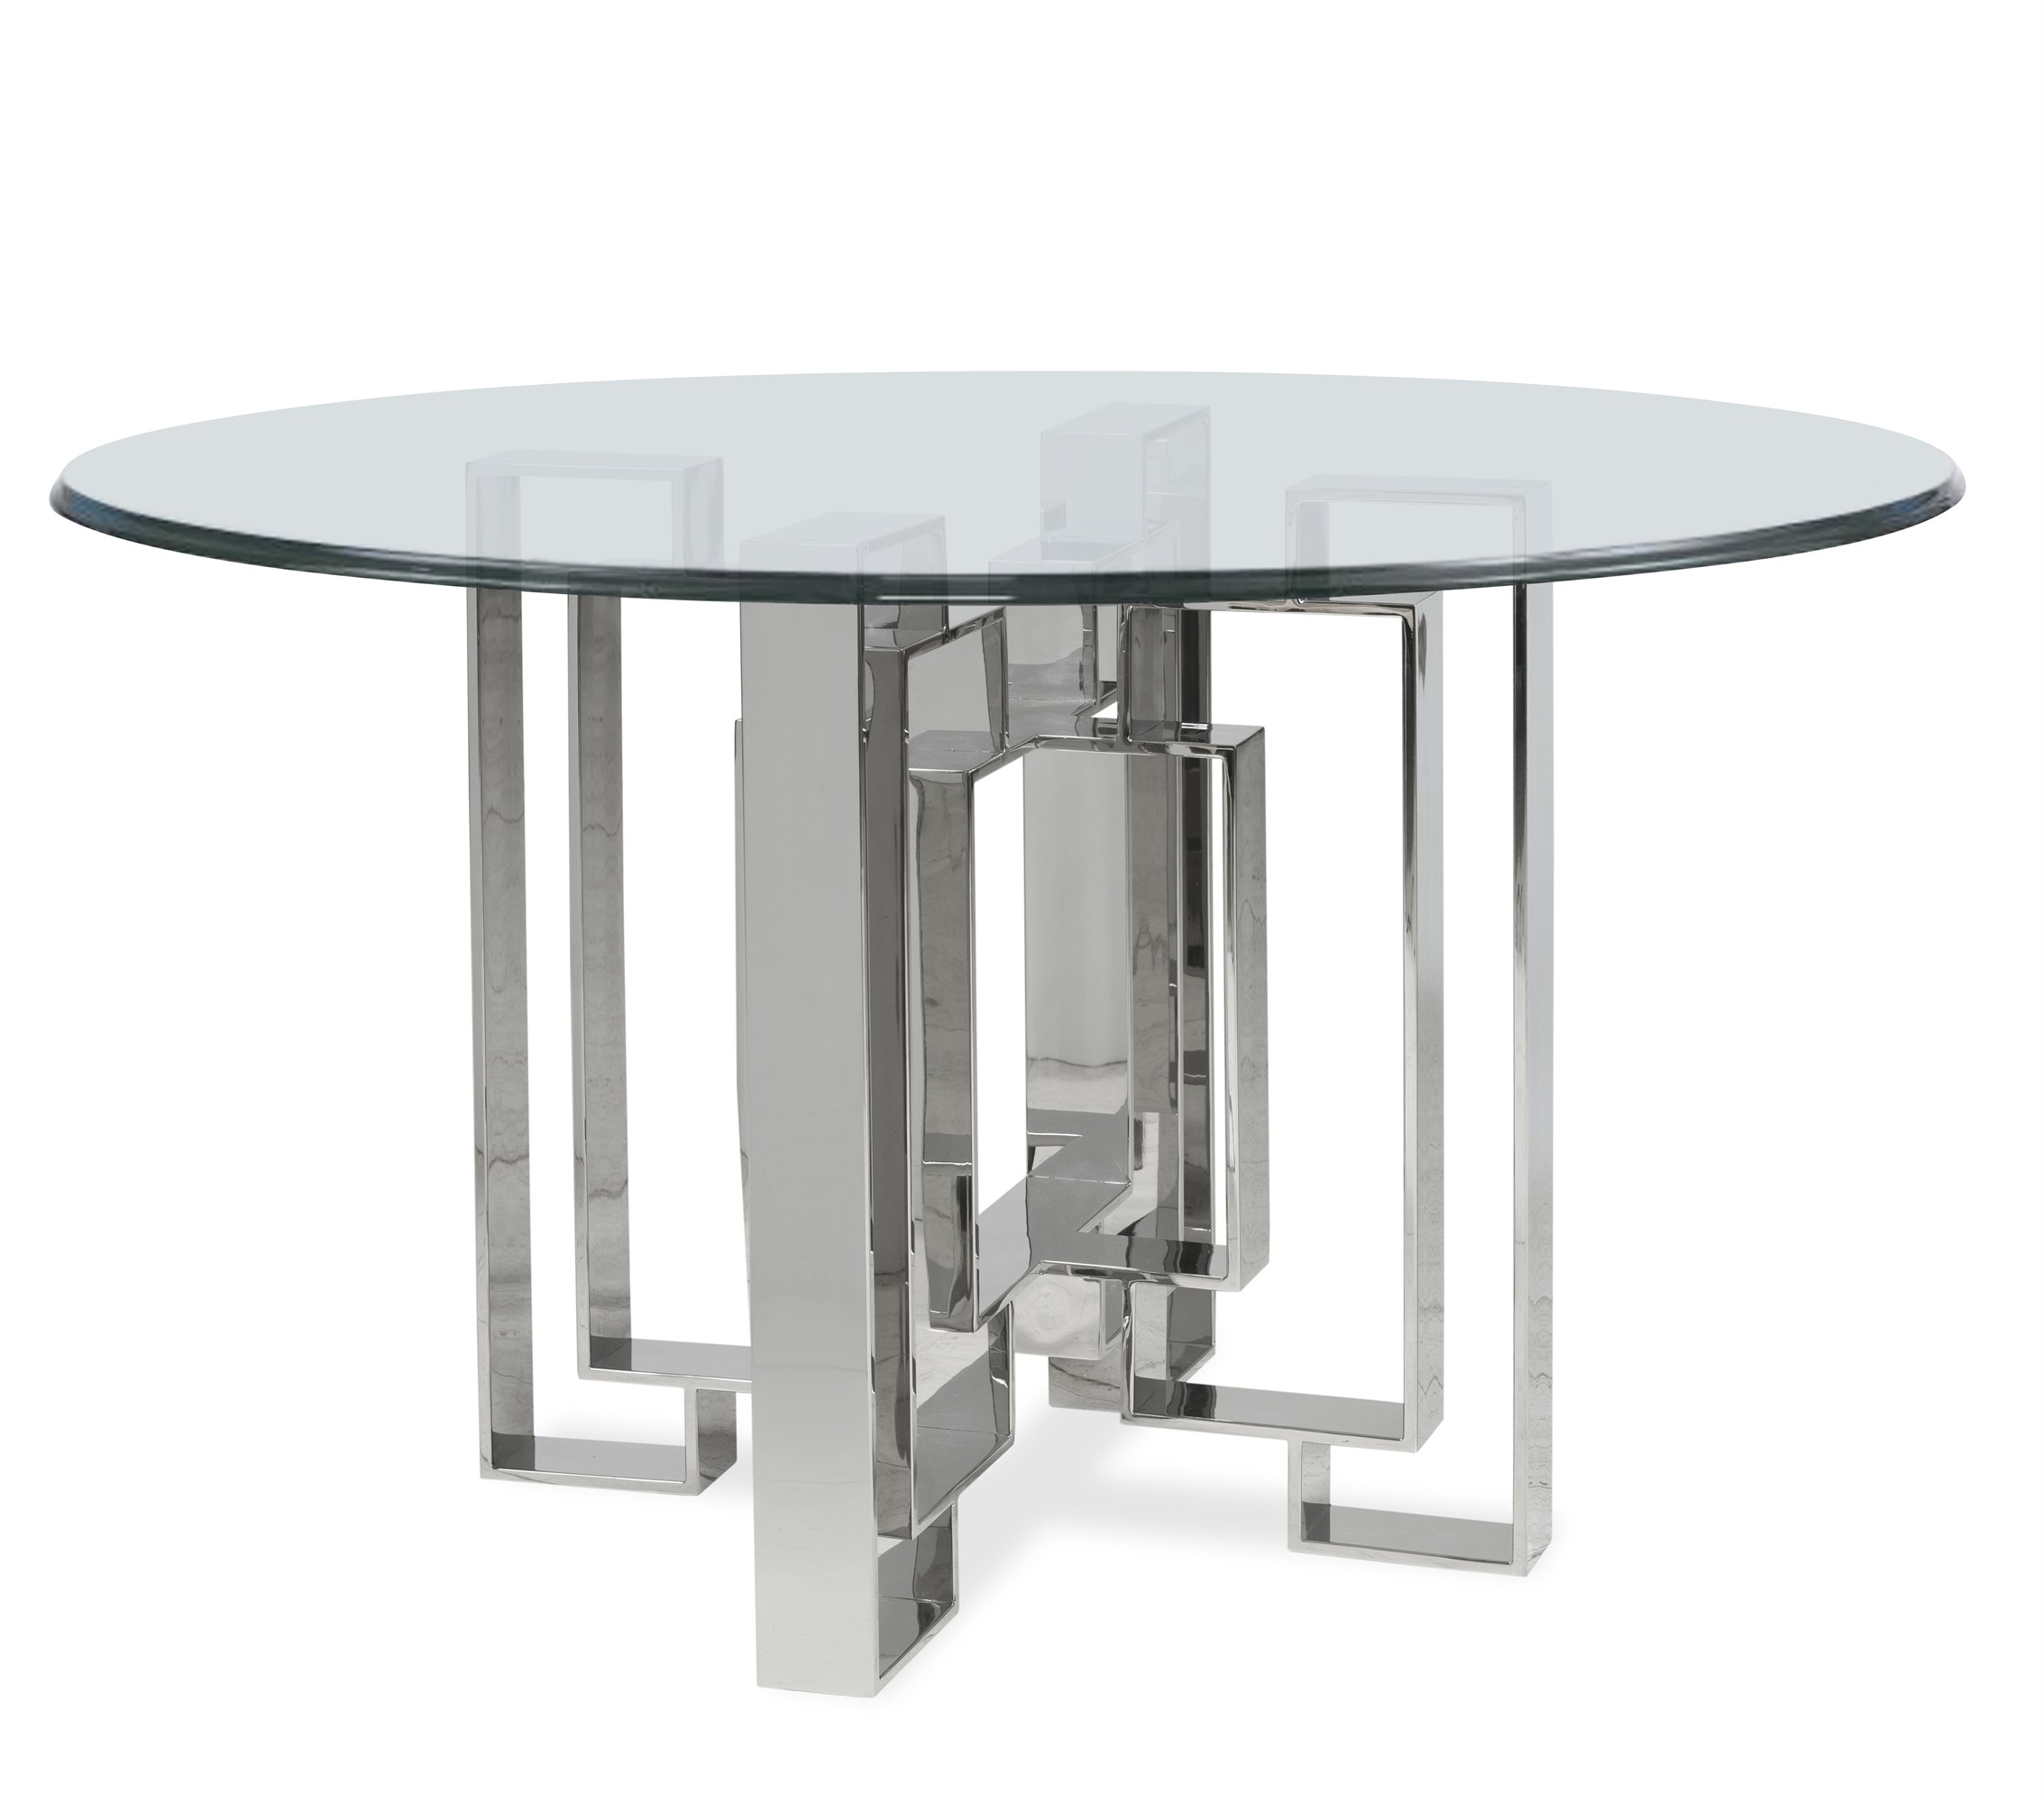 Fashionable Metal Dining Table Base Pertaining To Long Dining Tables With Polished Black Stainless Steel Base (Gallery 25 of 30)